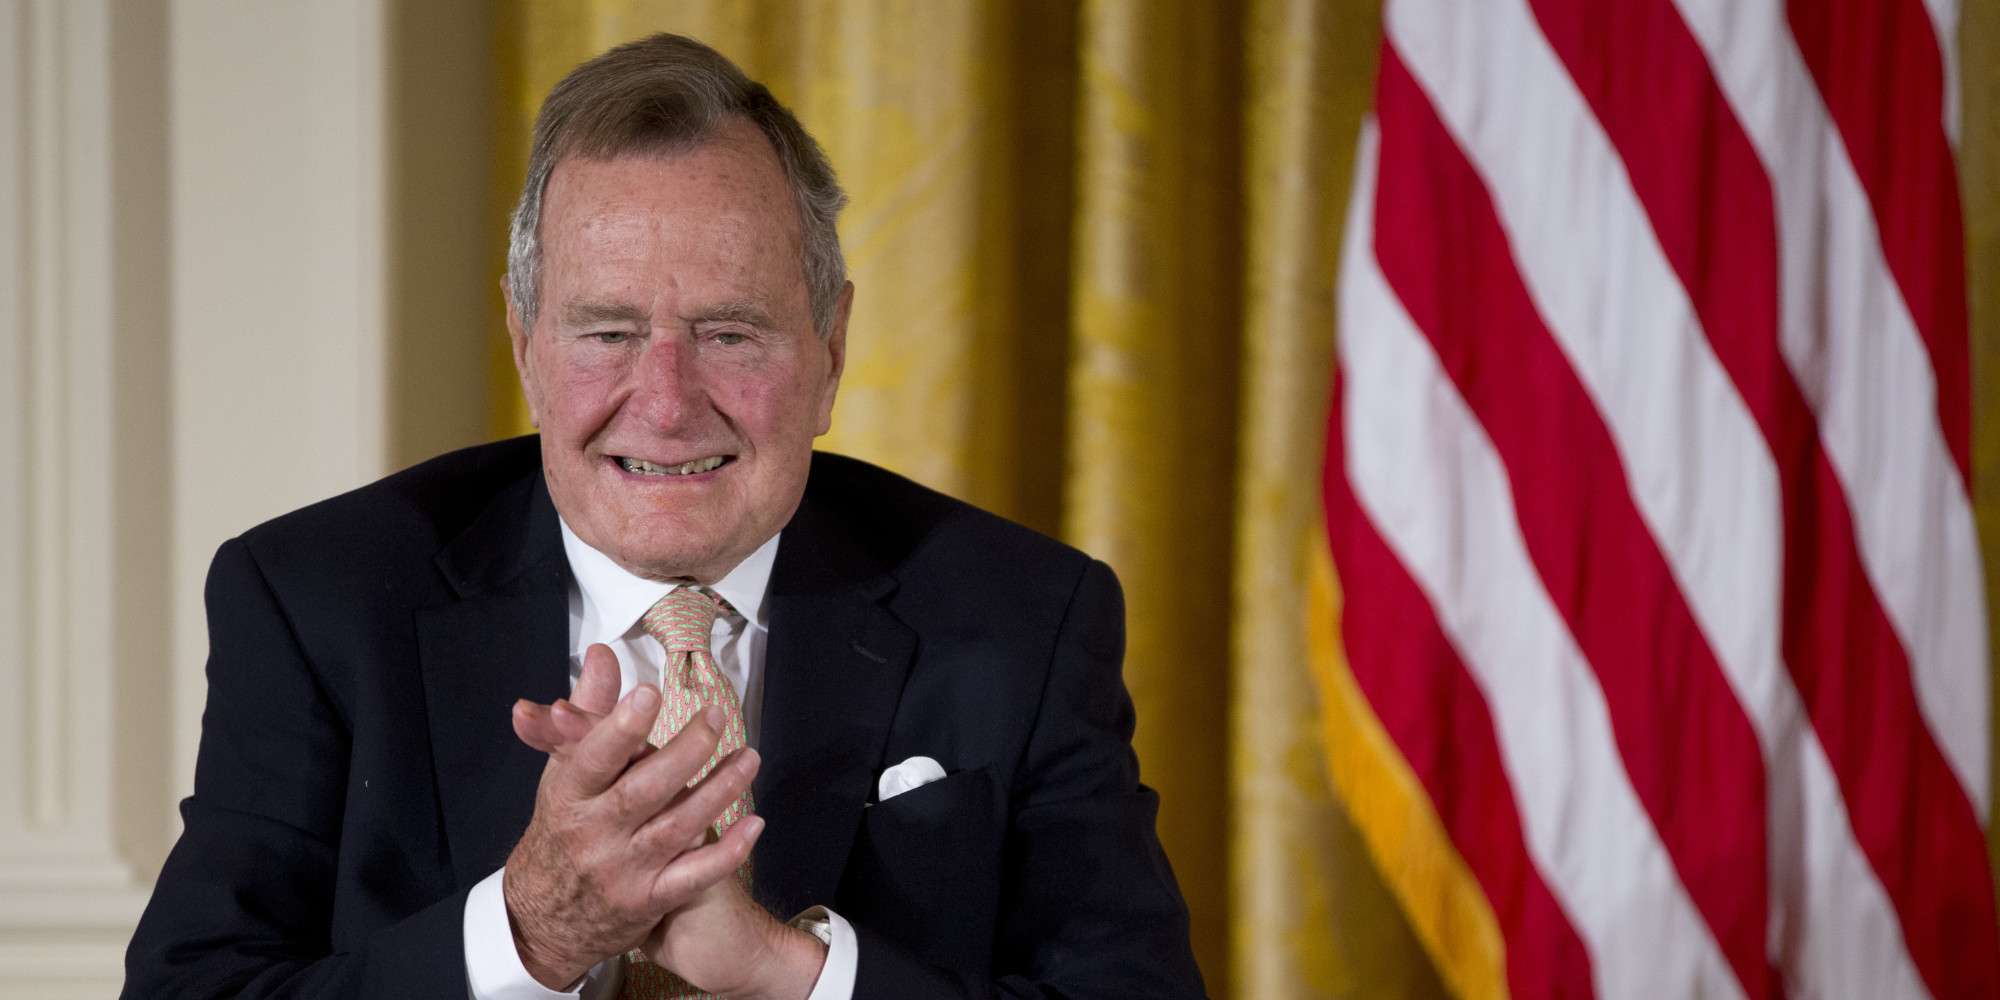 george h.w.bush essays History will not be kind to president george w bush and for good reason he was a failed president in every conceivable way and measure first he squandered budget surplus left over from president clinton and immediately put the expansion of drug coverage under medicare pt.